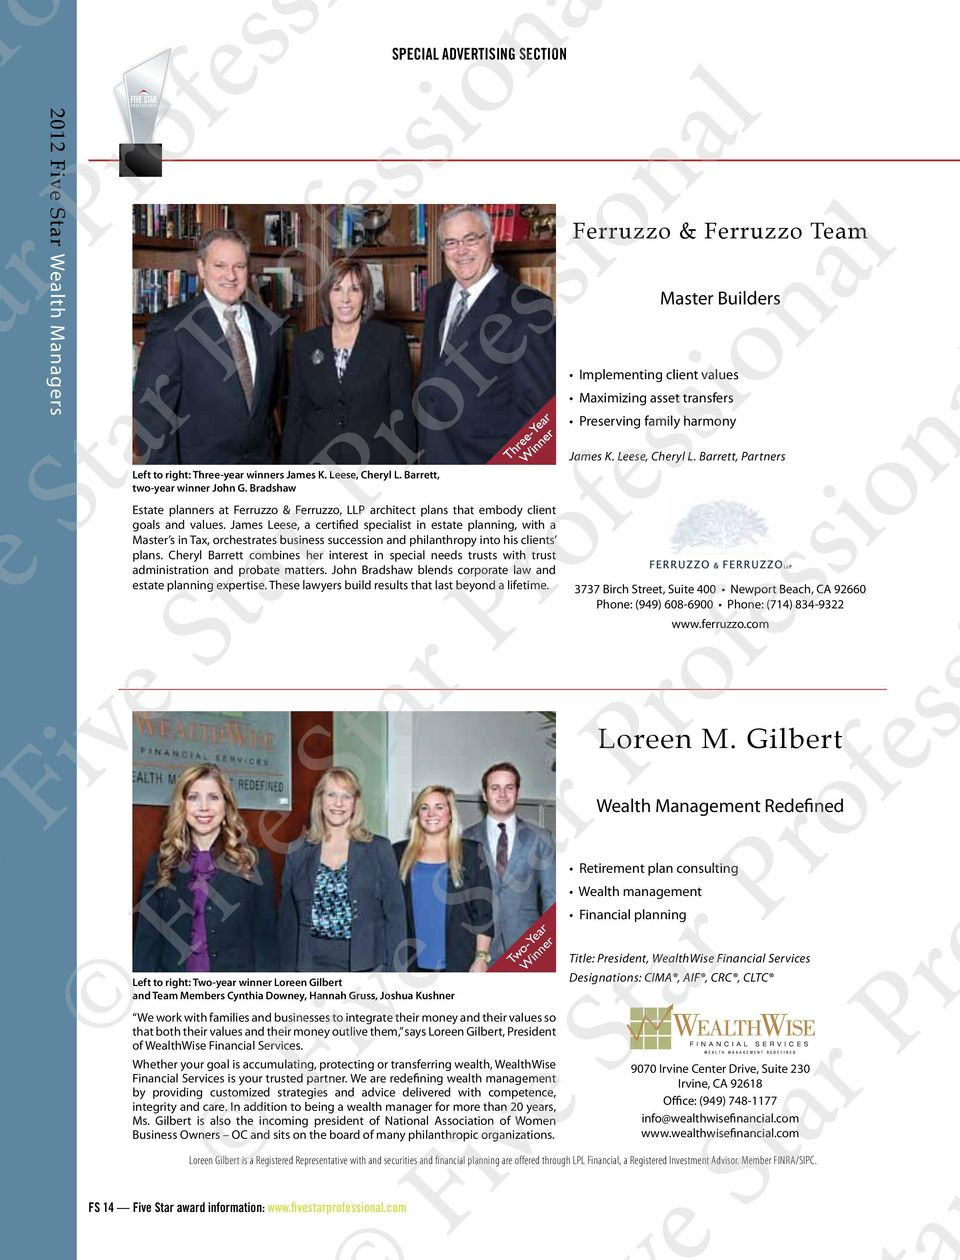 Barrett, Partners Estate planners at Ferruzzo & Ferruzzo, LLP architect plans that embody client goals and values.